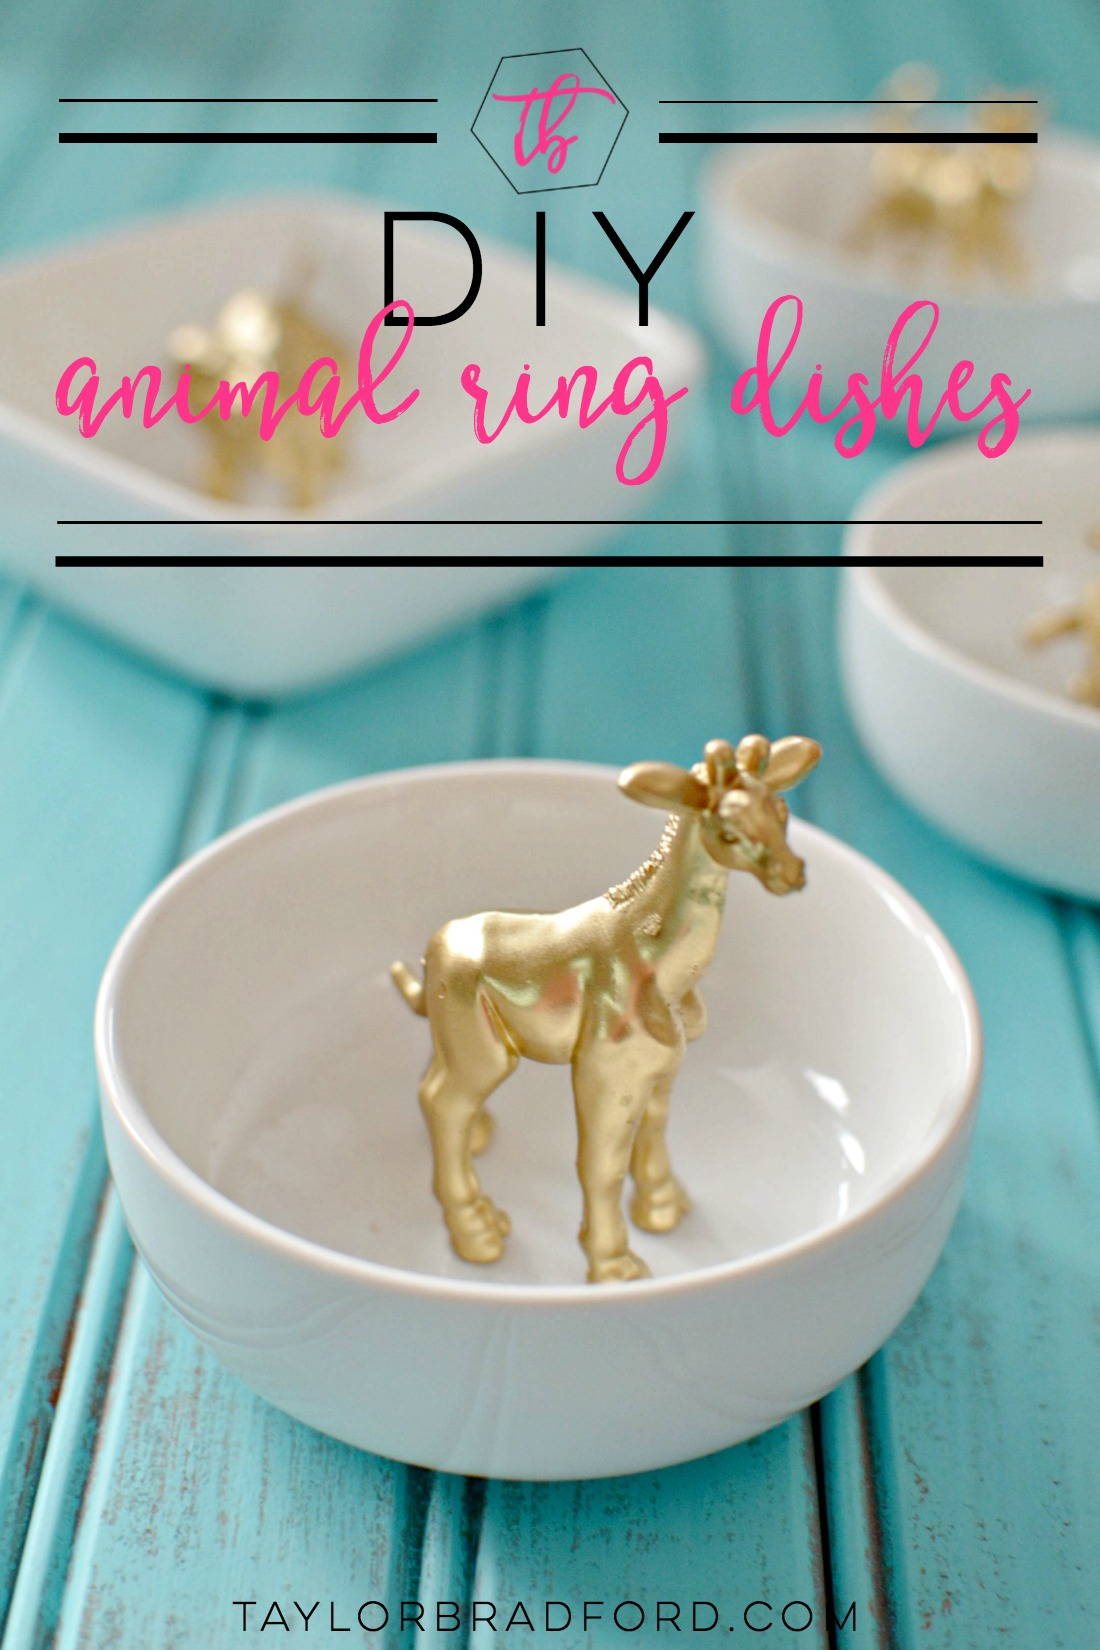 Craft gold animal ring dishes taylor bradford want a cute dish to display your rings how cute are these diy gold animal solutioingenieria